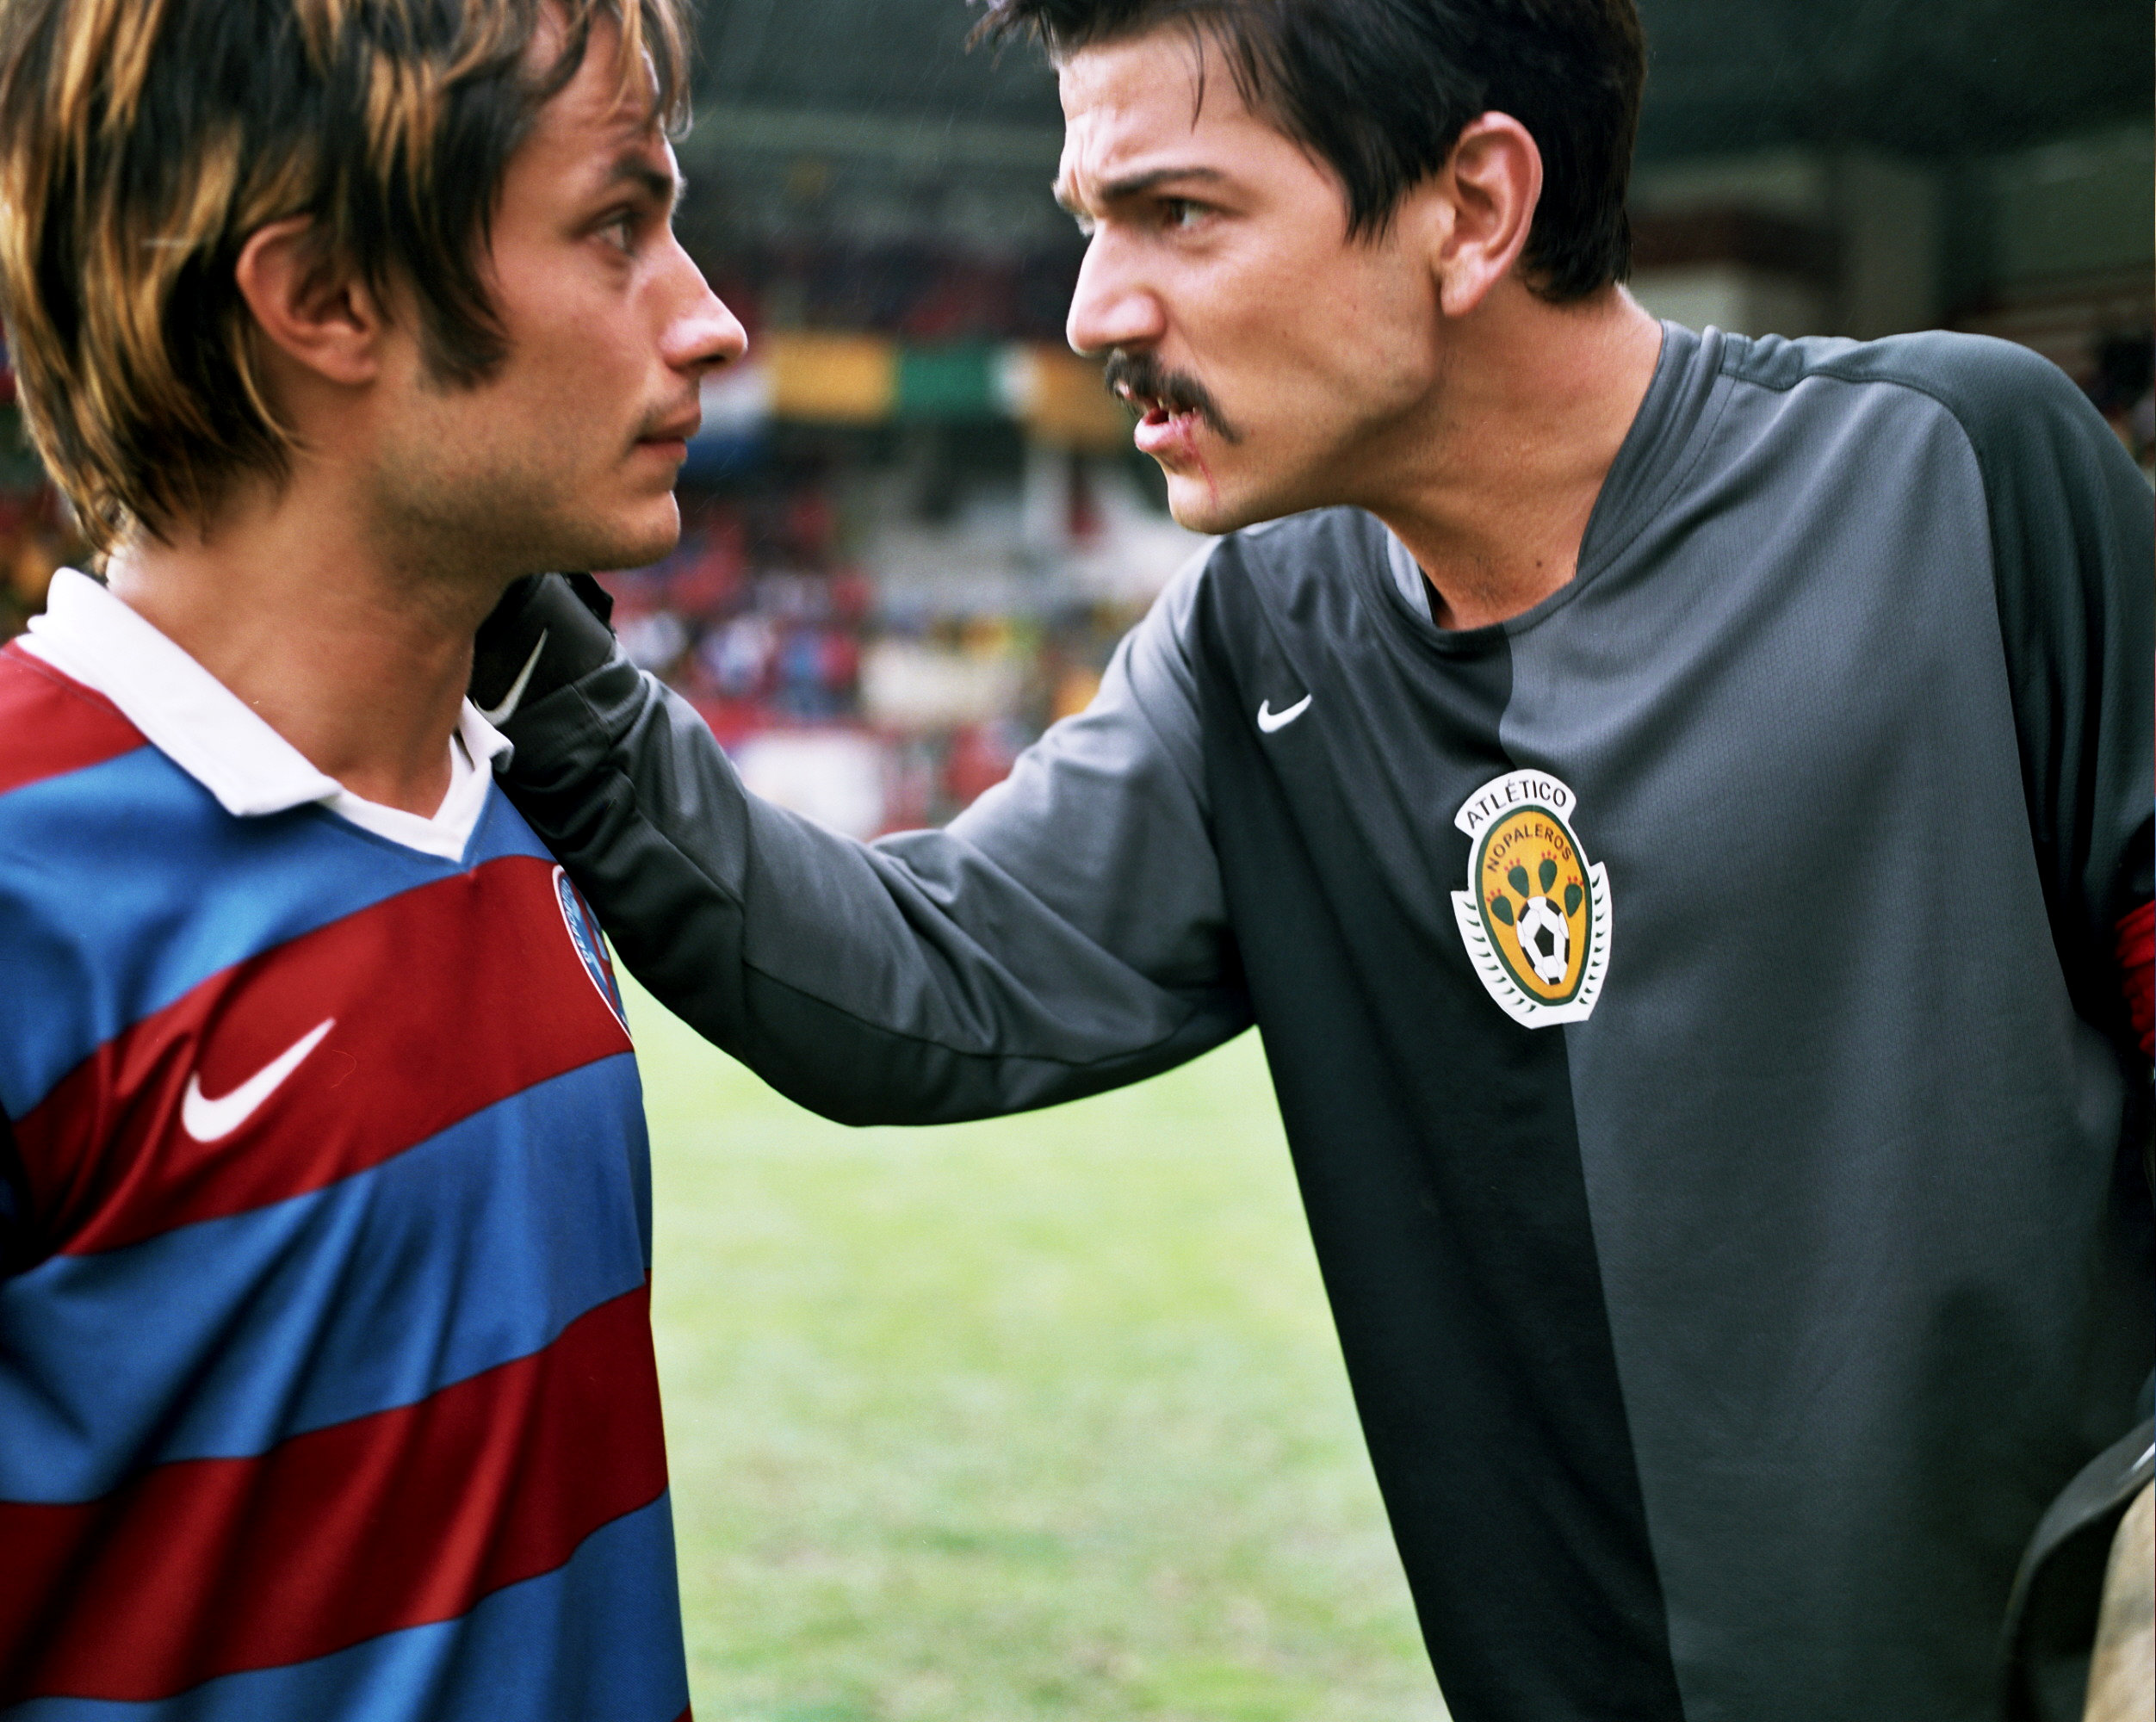 Gael Garcia Bernal stars as Tato and Diego Luna stars as Beto in Sony Pictures Classics' Rudo y Cursi (2009)